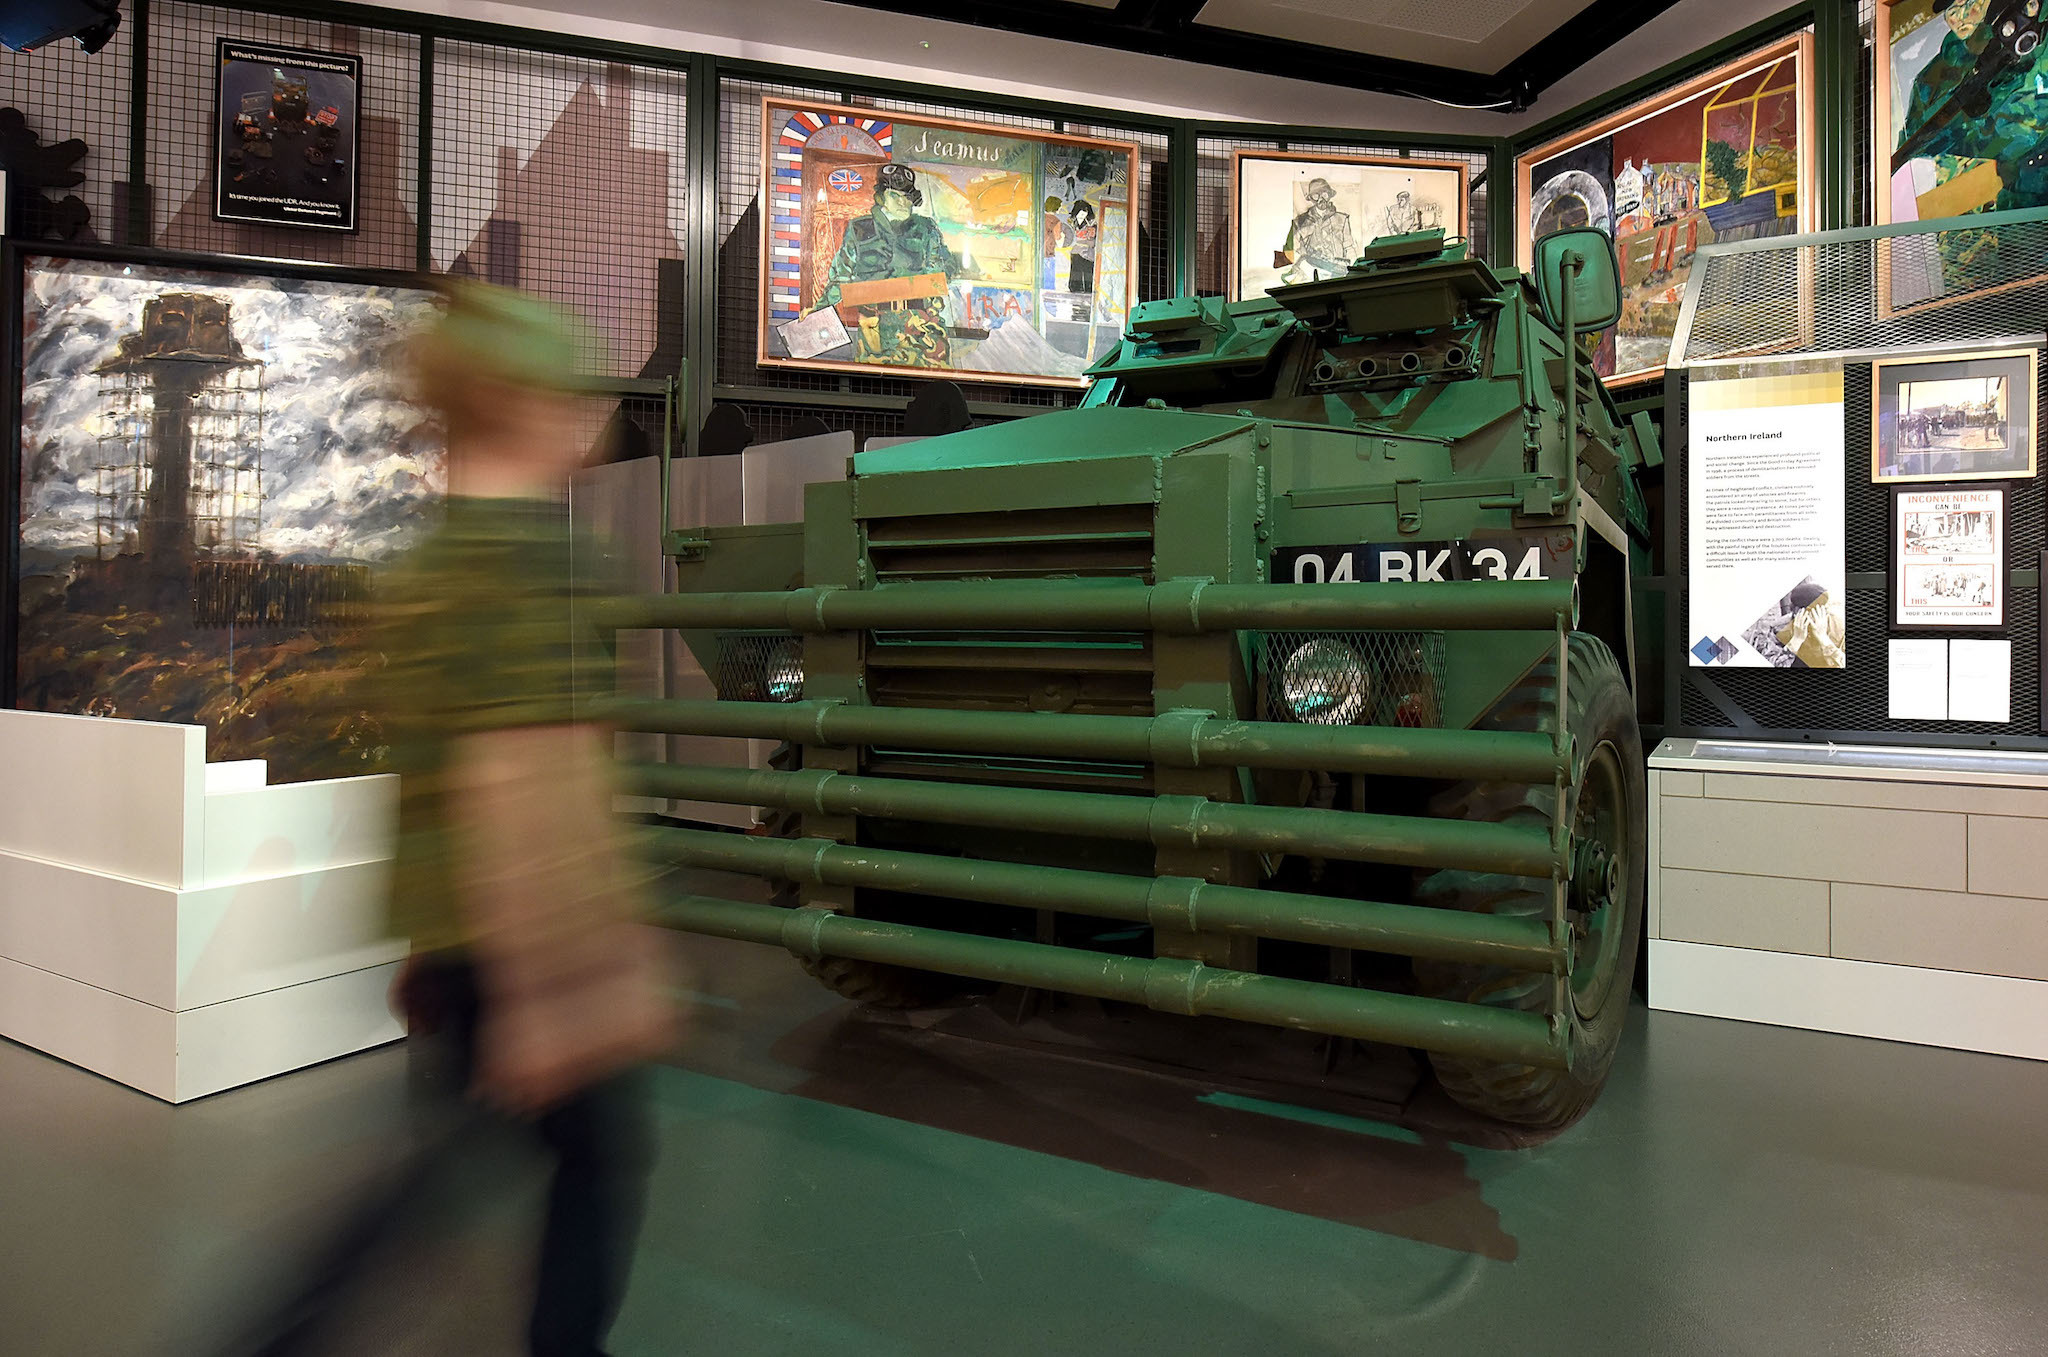 Humber, 'Pig', Society Gallery, National Army Museum, London